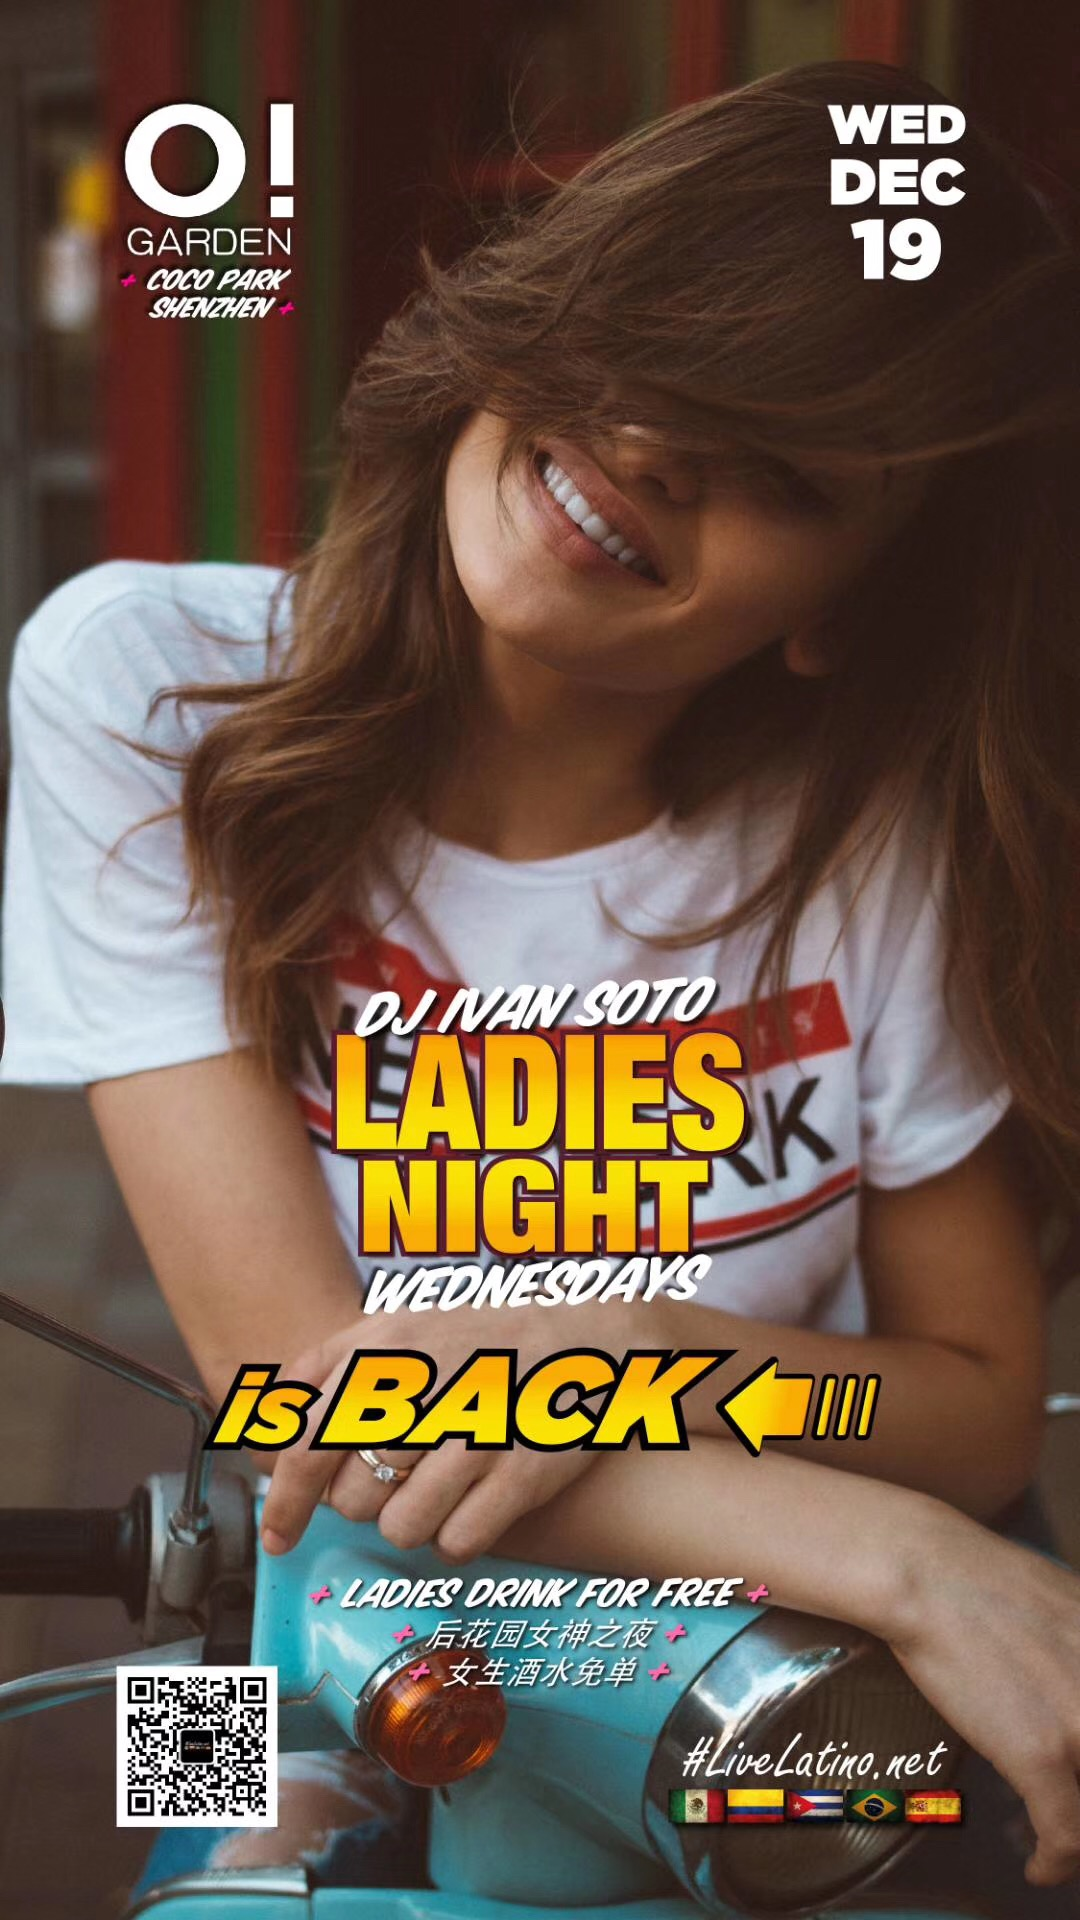 【O! GARDEN】LADIES NIGHT Wednesdays[#LiveLatino.net] (ドリンク無料)